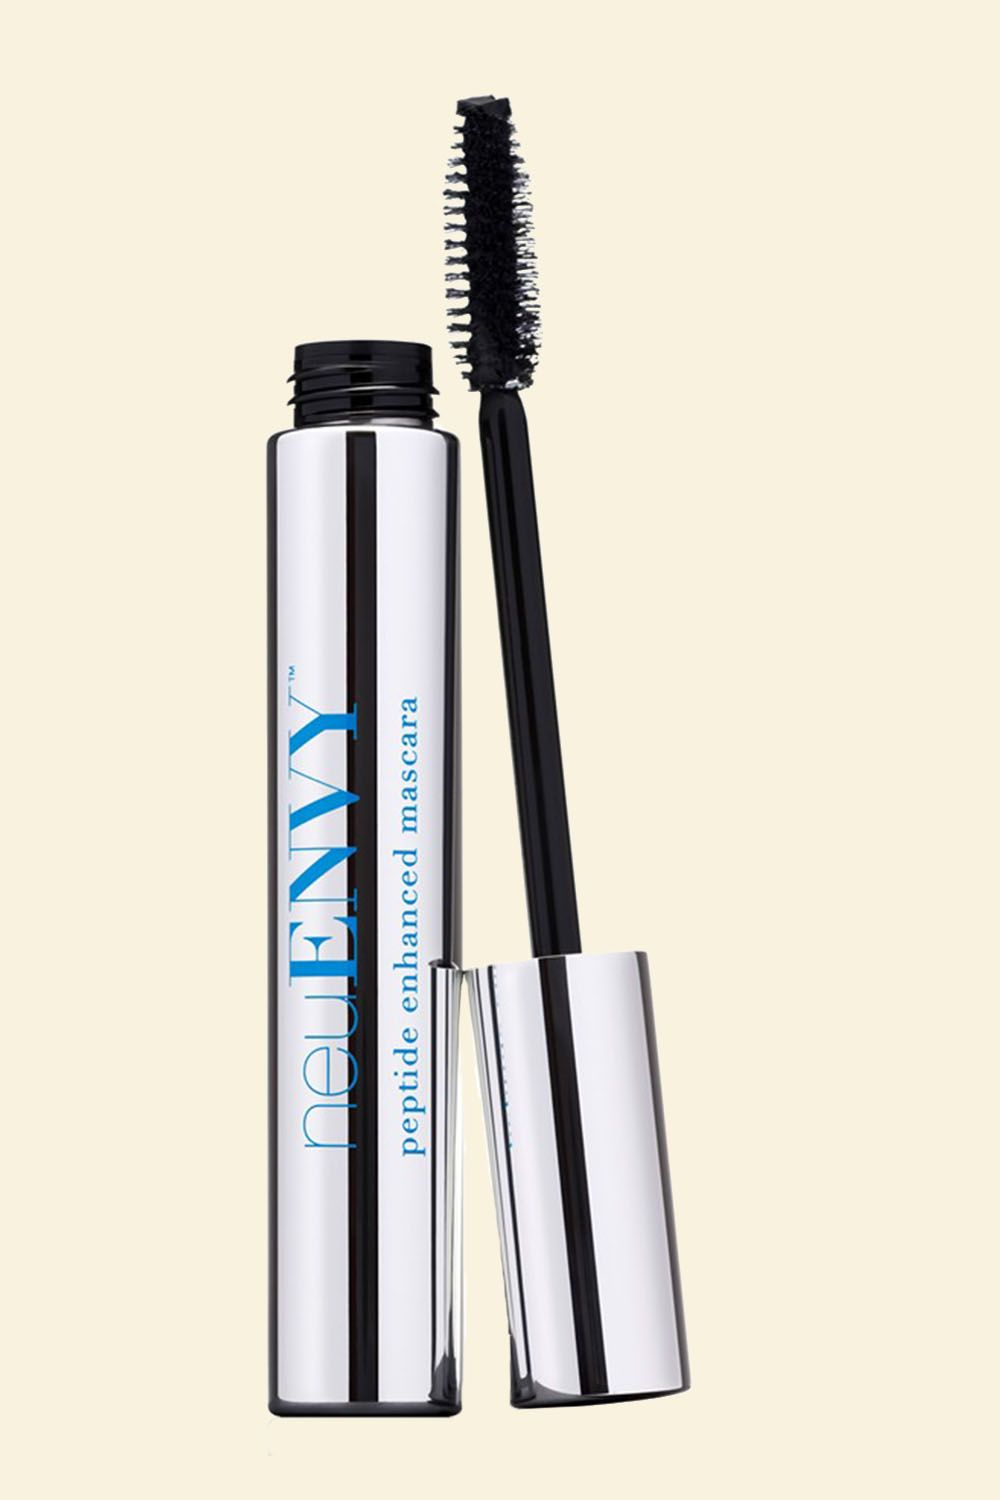 """<p>Designed to be used in tandem with your lash-enhancing serum of choice, this volumizing<span class=""""redactor-invisible-space"""" data-verified=""""redactor"""" data-redactor-tag=""""span"""" data-redactor-class=""""redactor-invisible-space""""></span>and lengthening mascara ispackedwith peptides to condition <em data-redactor-tag=""""em"""" data-verified=""""redactor"""">and </em>protect your fringe against the elements.</p><p><br></p><p>neuLash by Skin Research Laboratories neuENVY Peptide Enhanced Mascara, $32; <a href=""""http://bit.ly/2jzcgJa"""" target=""""_blank"""" data-tracking-id=""""recirc-text-link"""">nordstrom.com</a>.</p>"""